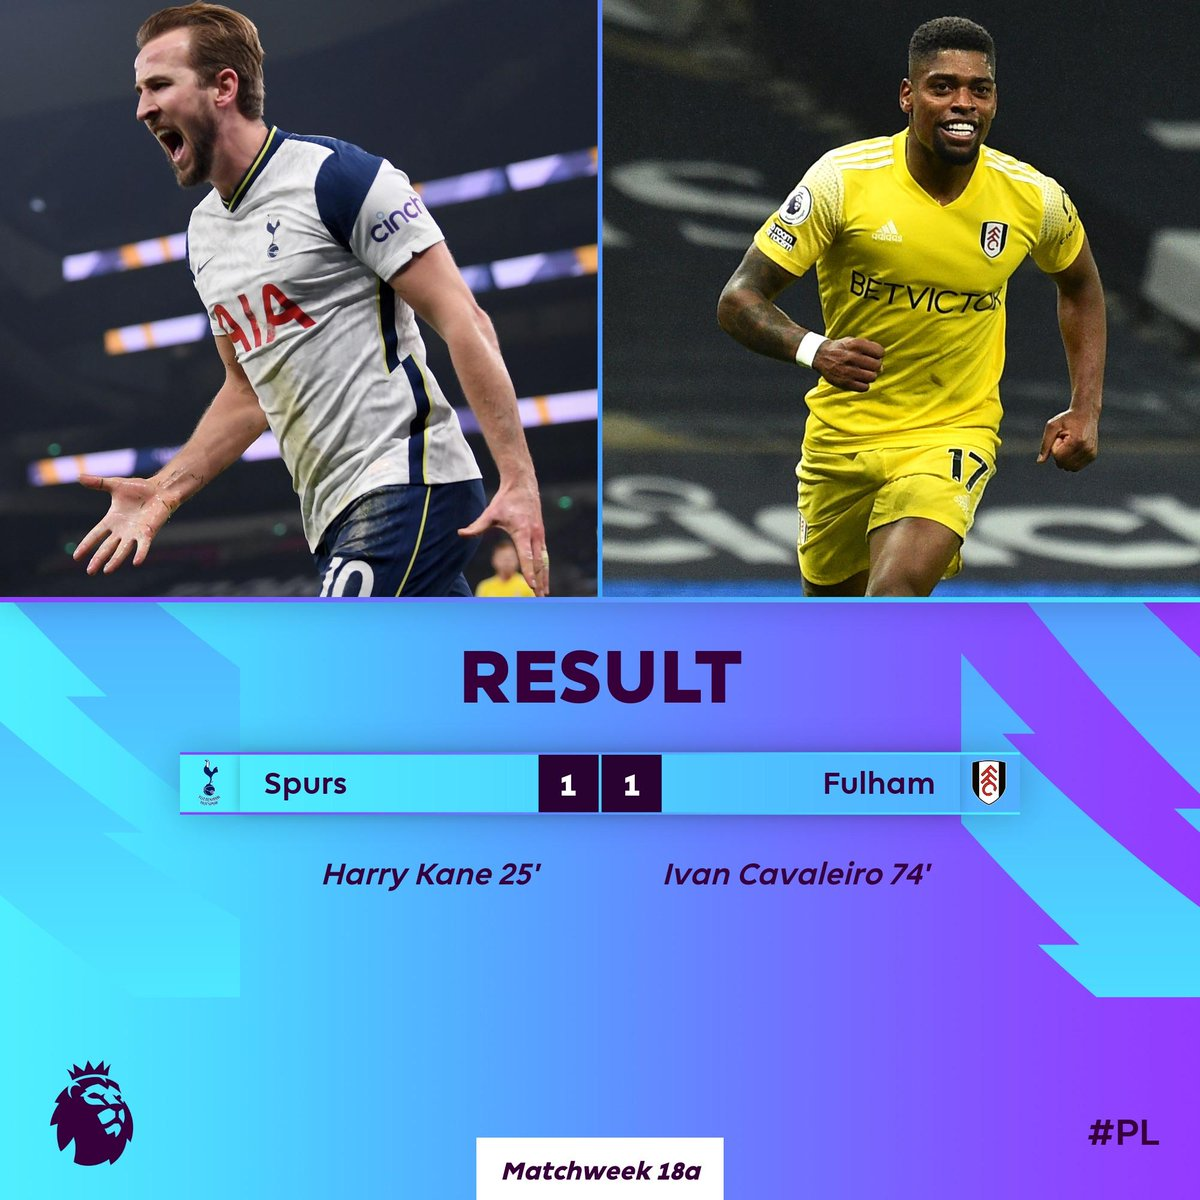 Fulham fight back to claim a much-deserved point  #TOTFUL